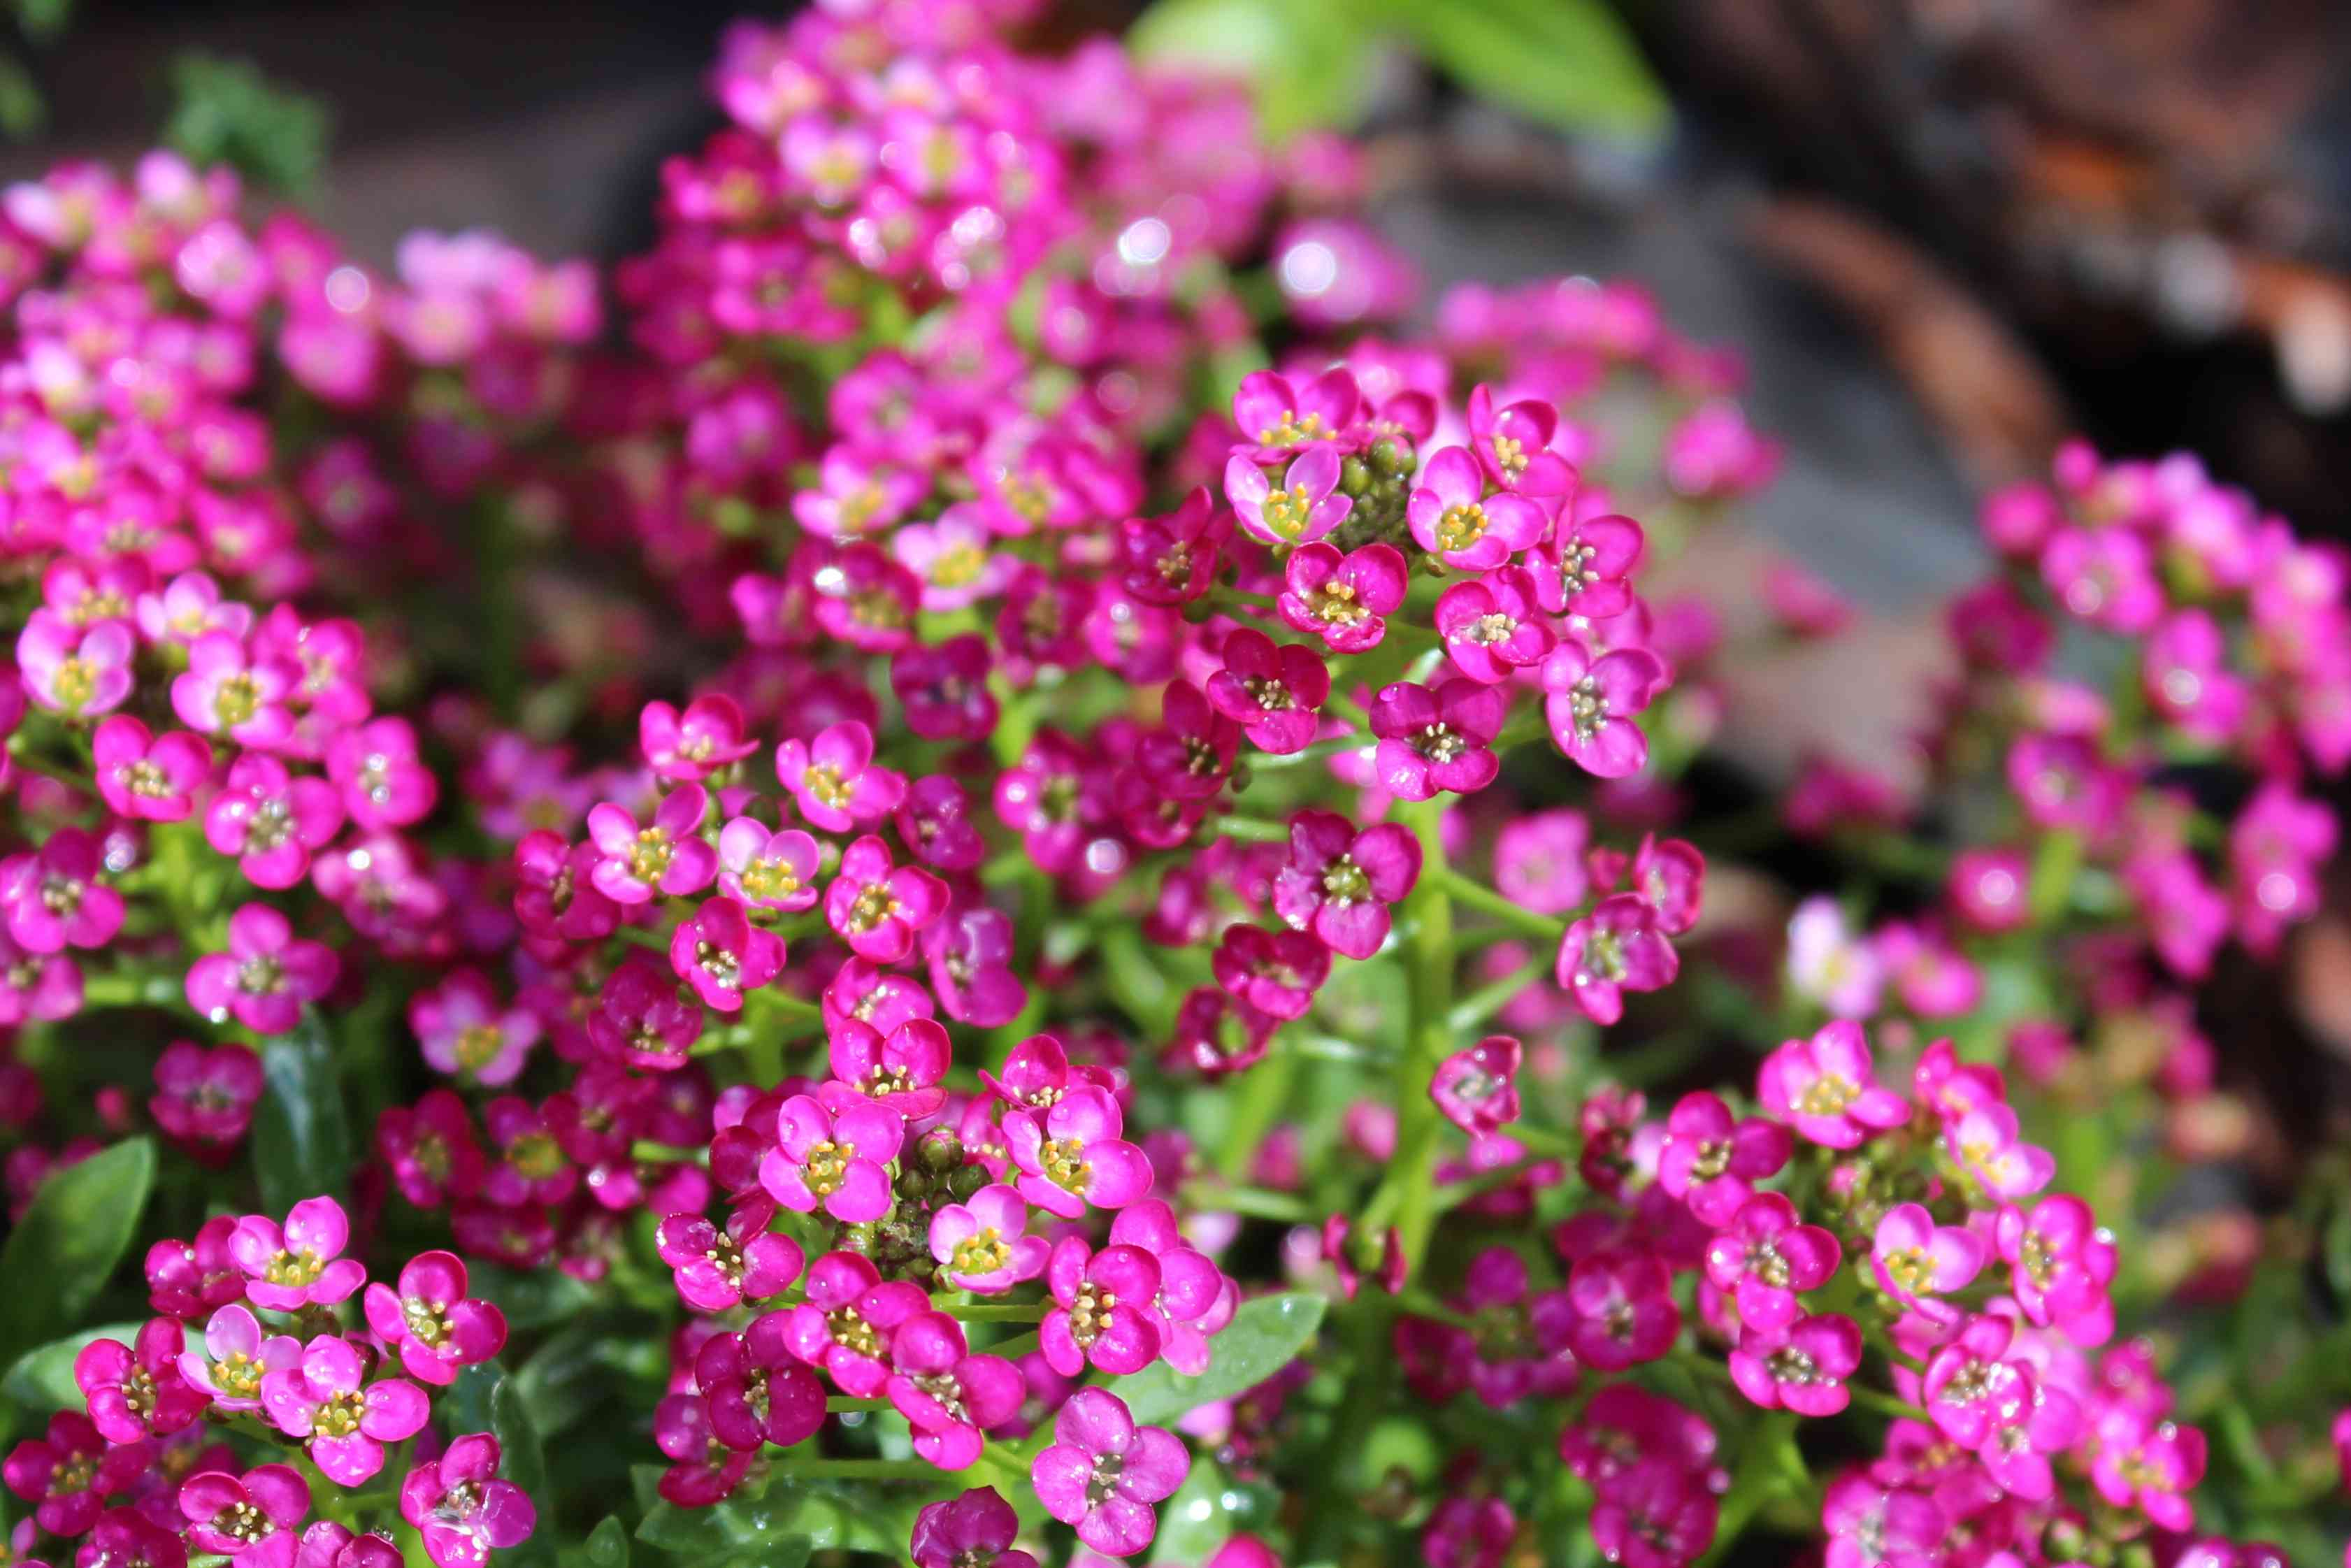 Blossoms of Deep Pink Alyssum